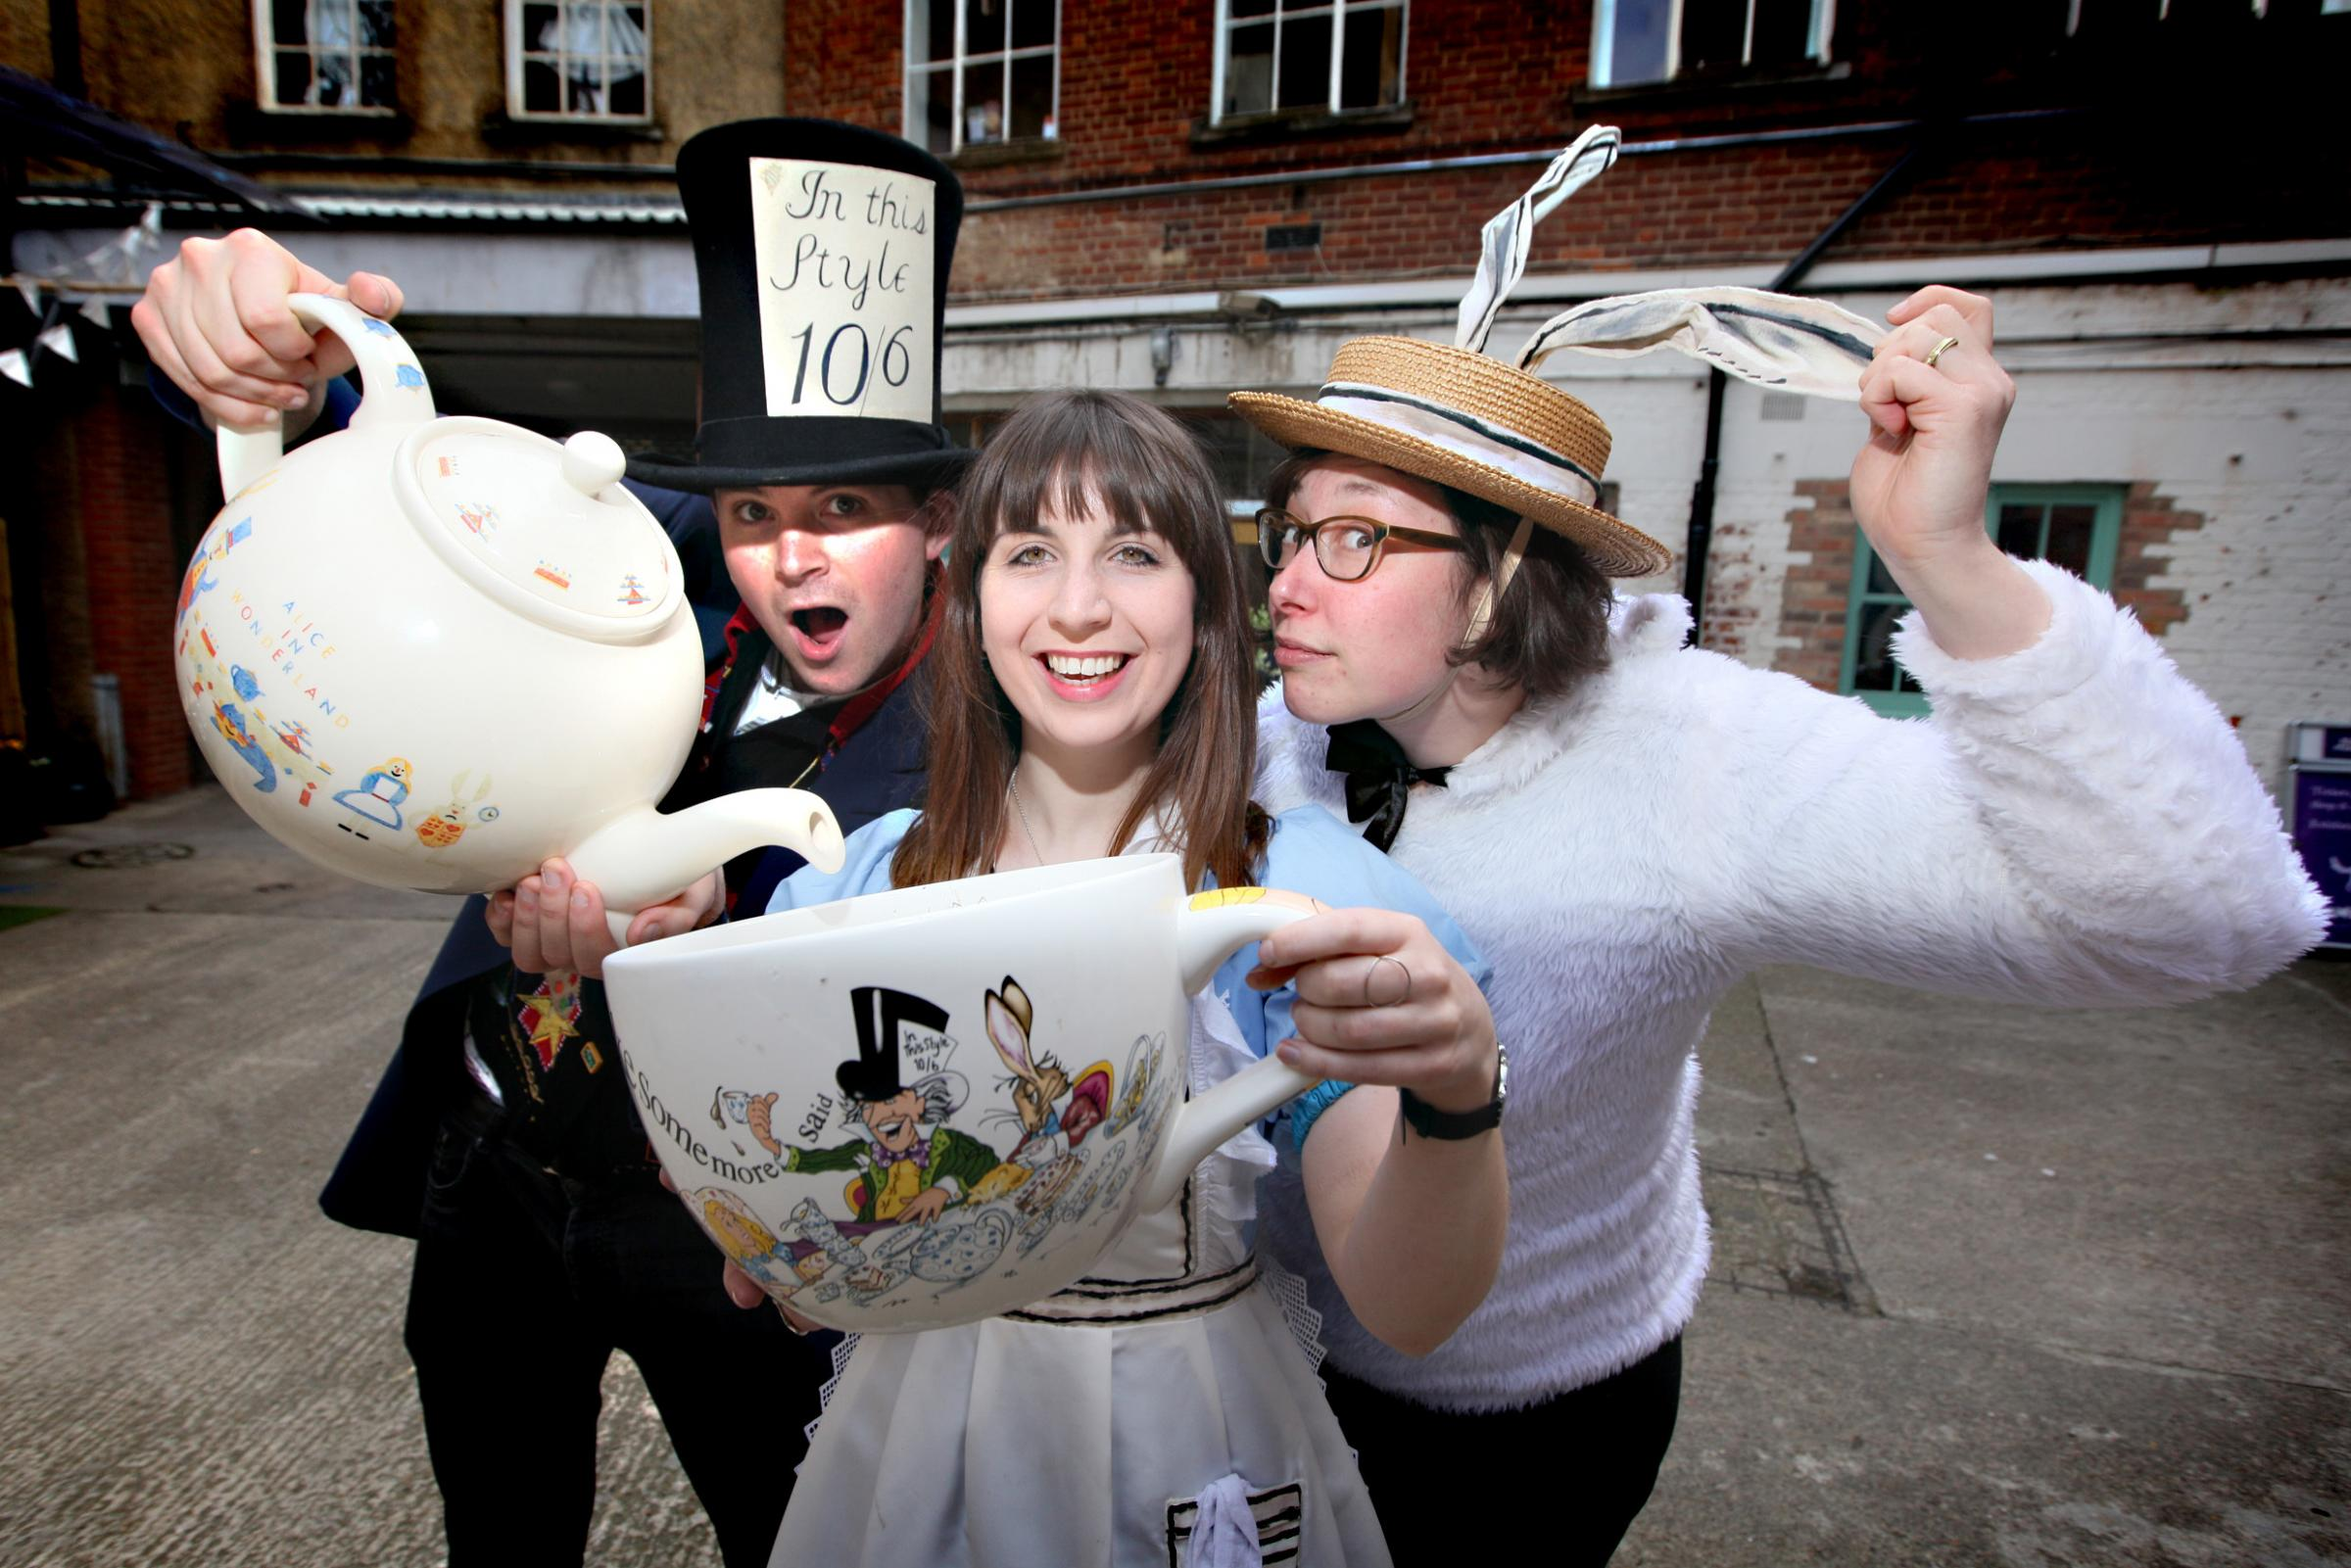 The Story Museum, including David Gibb as the Mad Hatter, Lauren Greenaway as Alice and Micaela Tuckwell as the White Rabbit, has already set up a Mad Hatter's Tea Party exhibition ahead of this year's Alice's Day festivities.